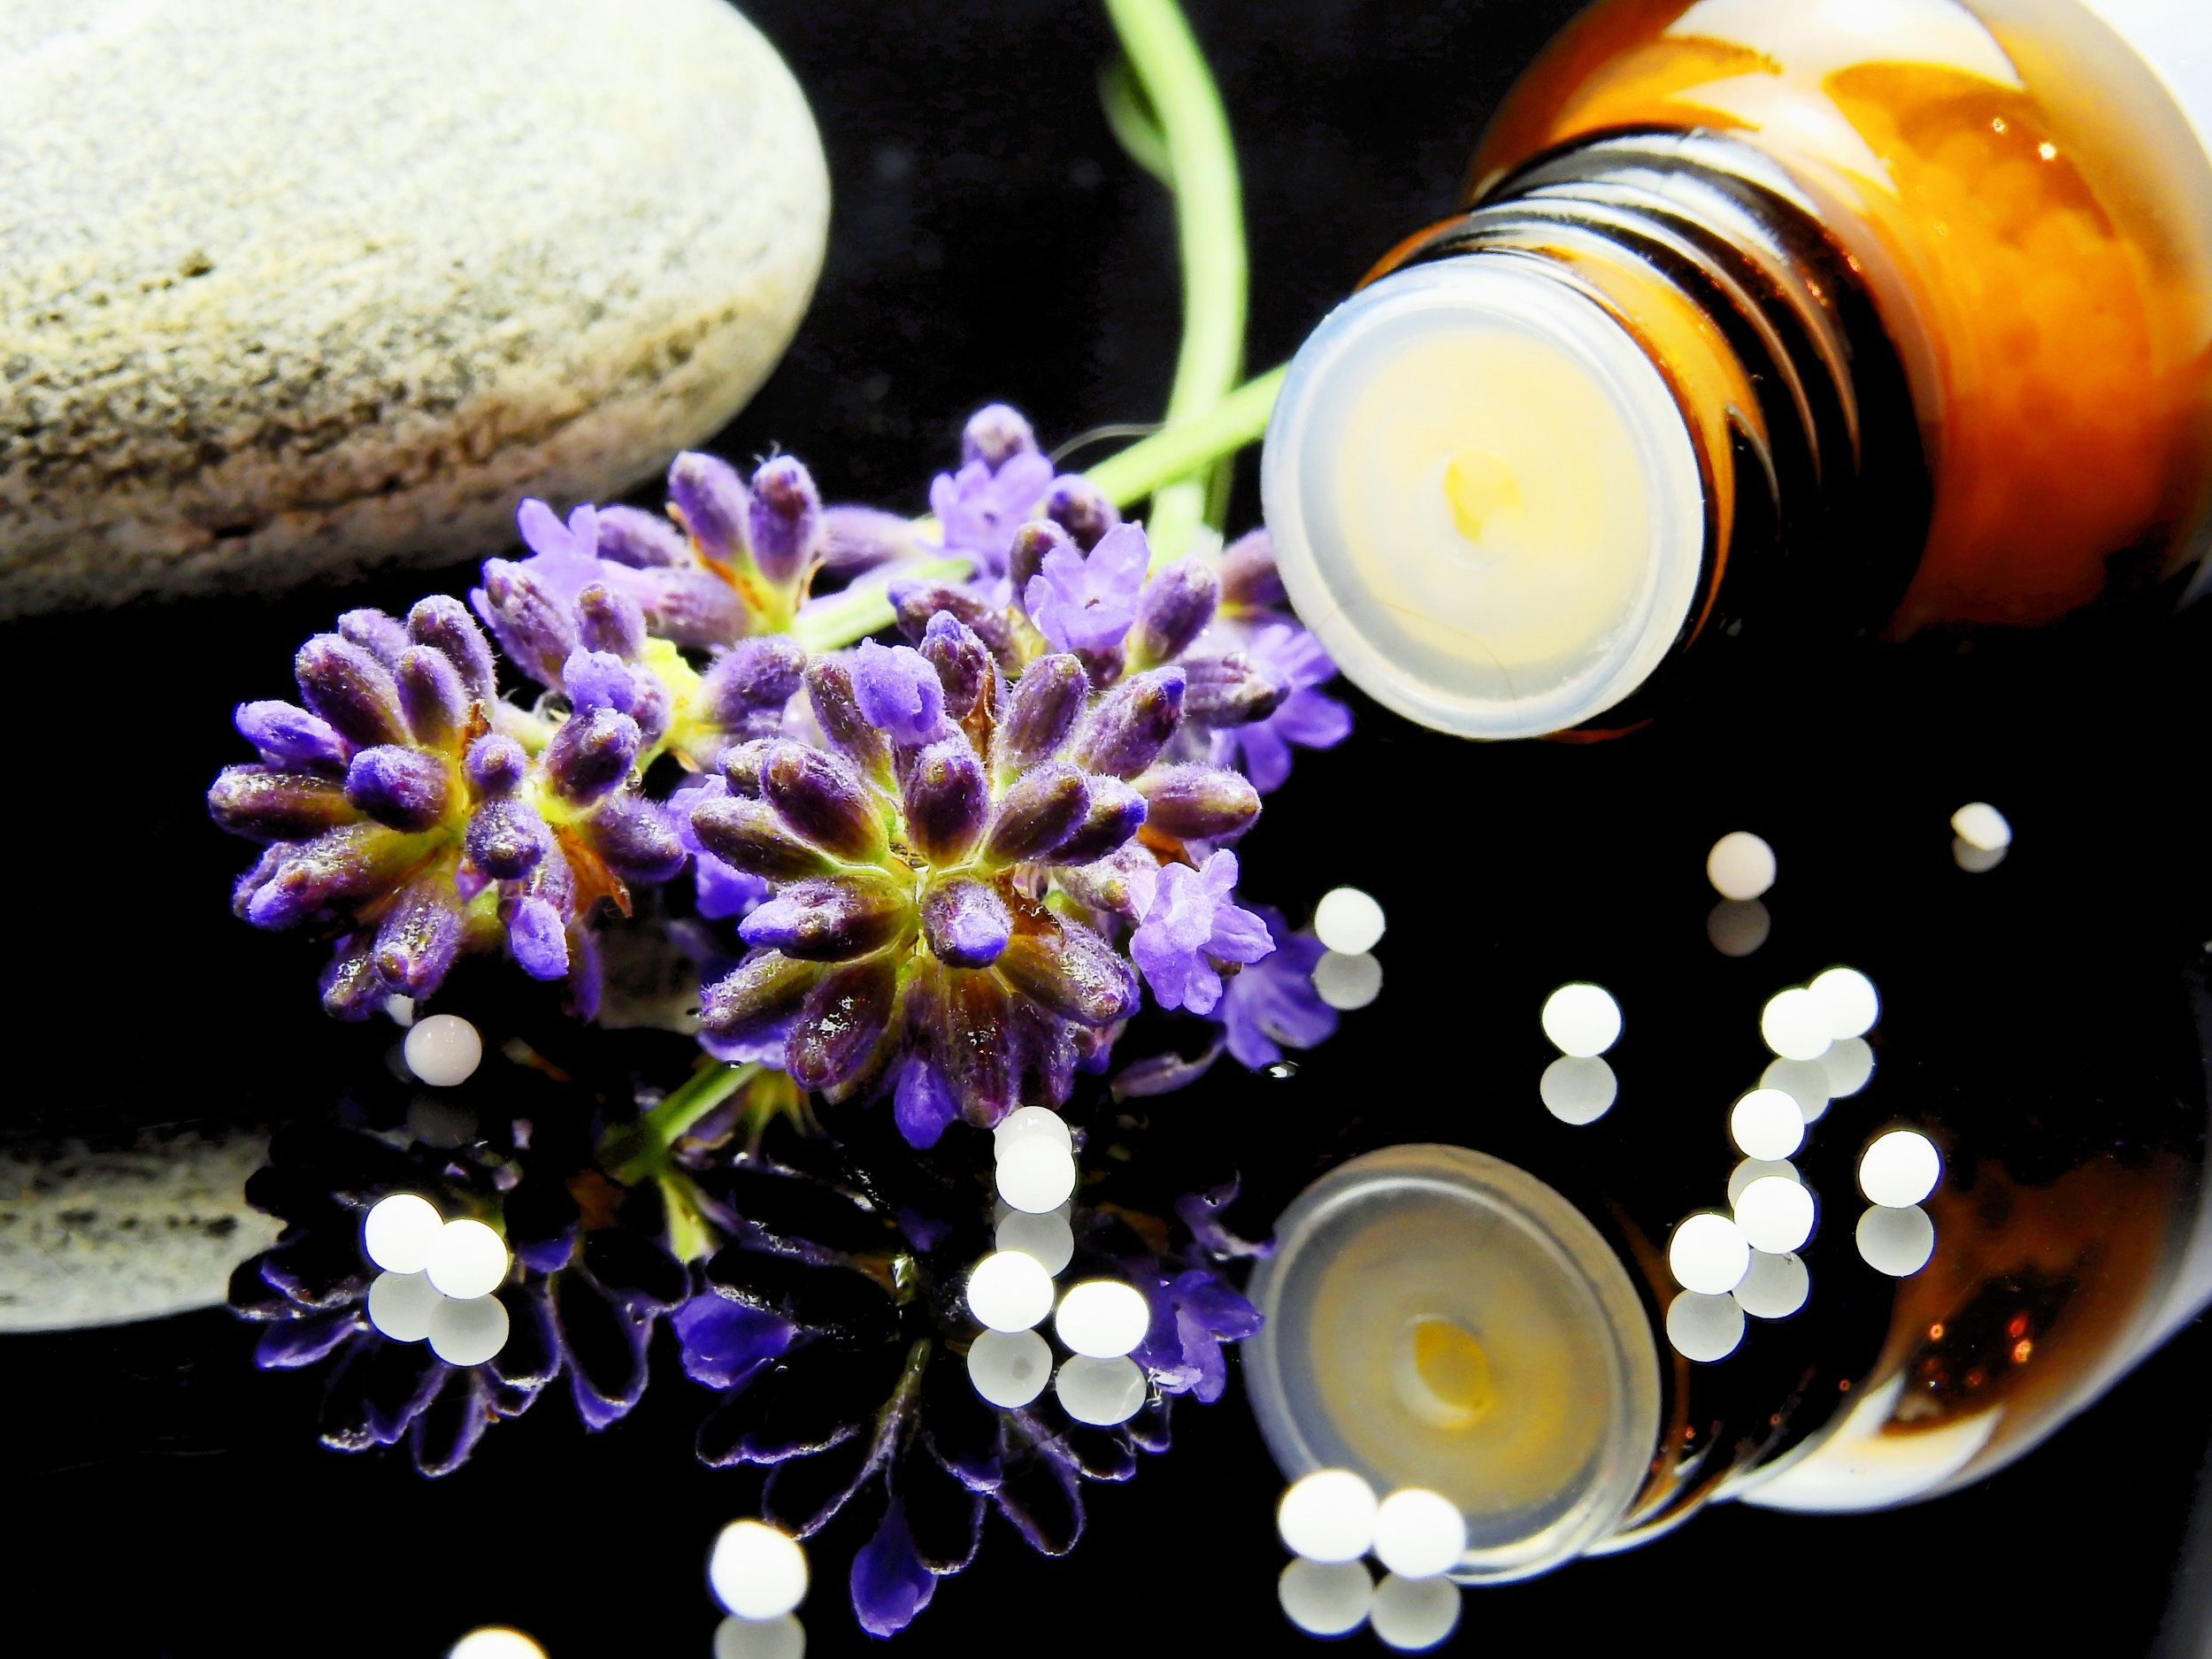 Homeopathic Remedies - Homeopathy is a specialized form of natural medicine. We stock a large selection in 6x,6c,30c and 200c.